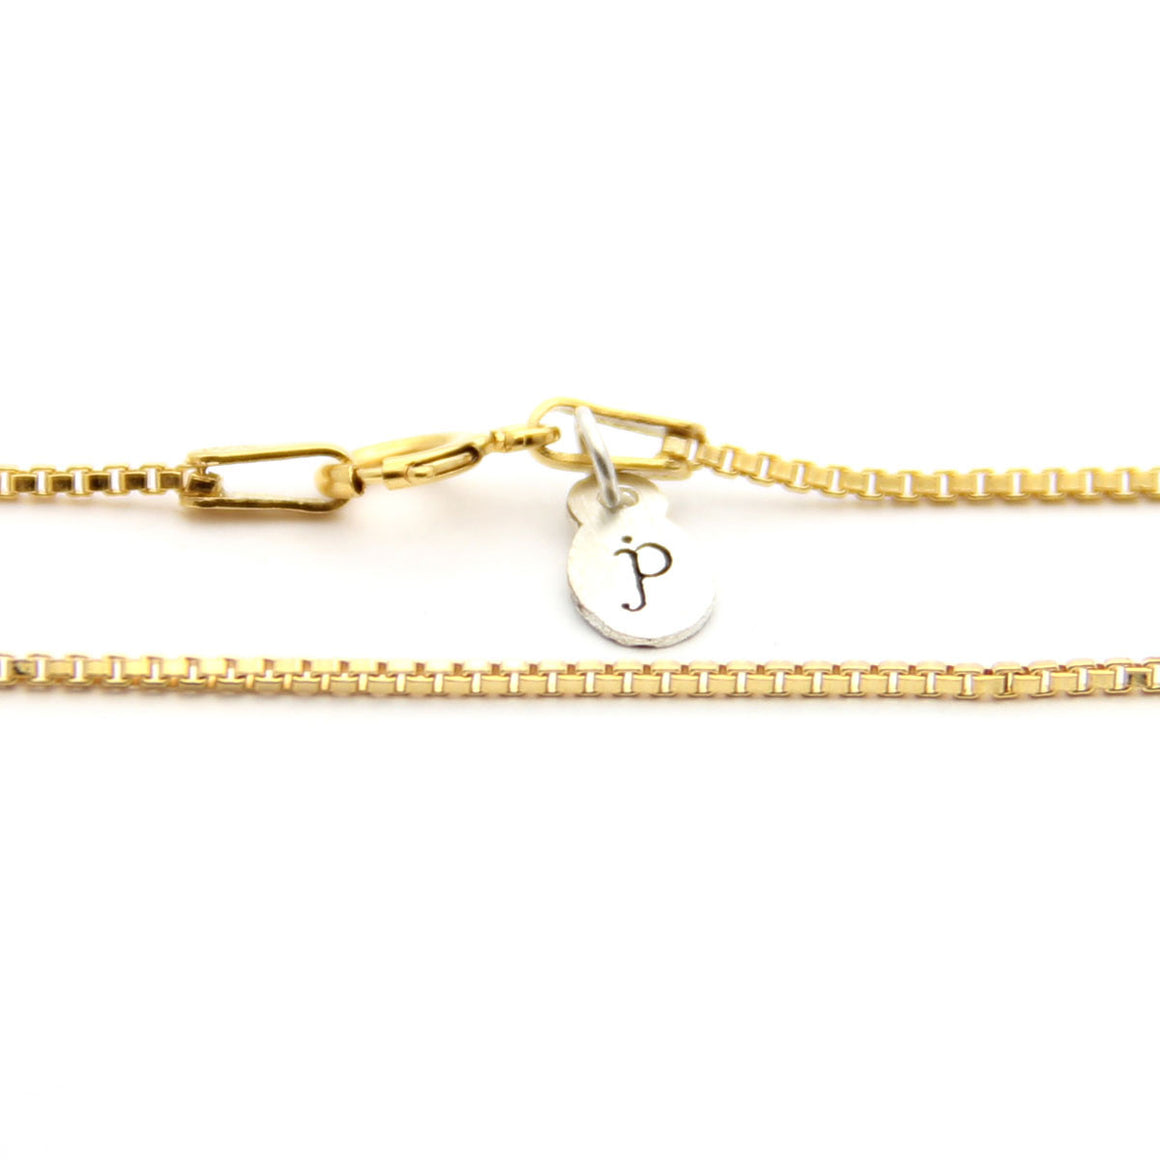 gold box chain options, chain necklace add on, design your own jewelry, jenny present®